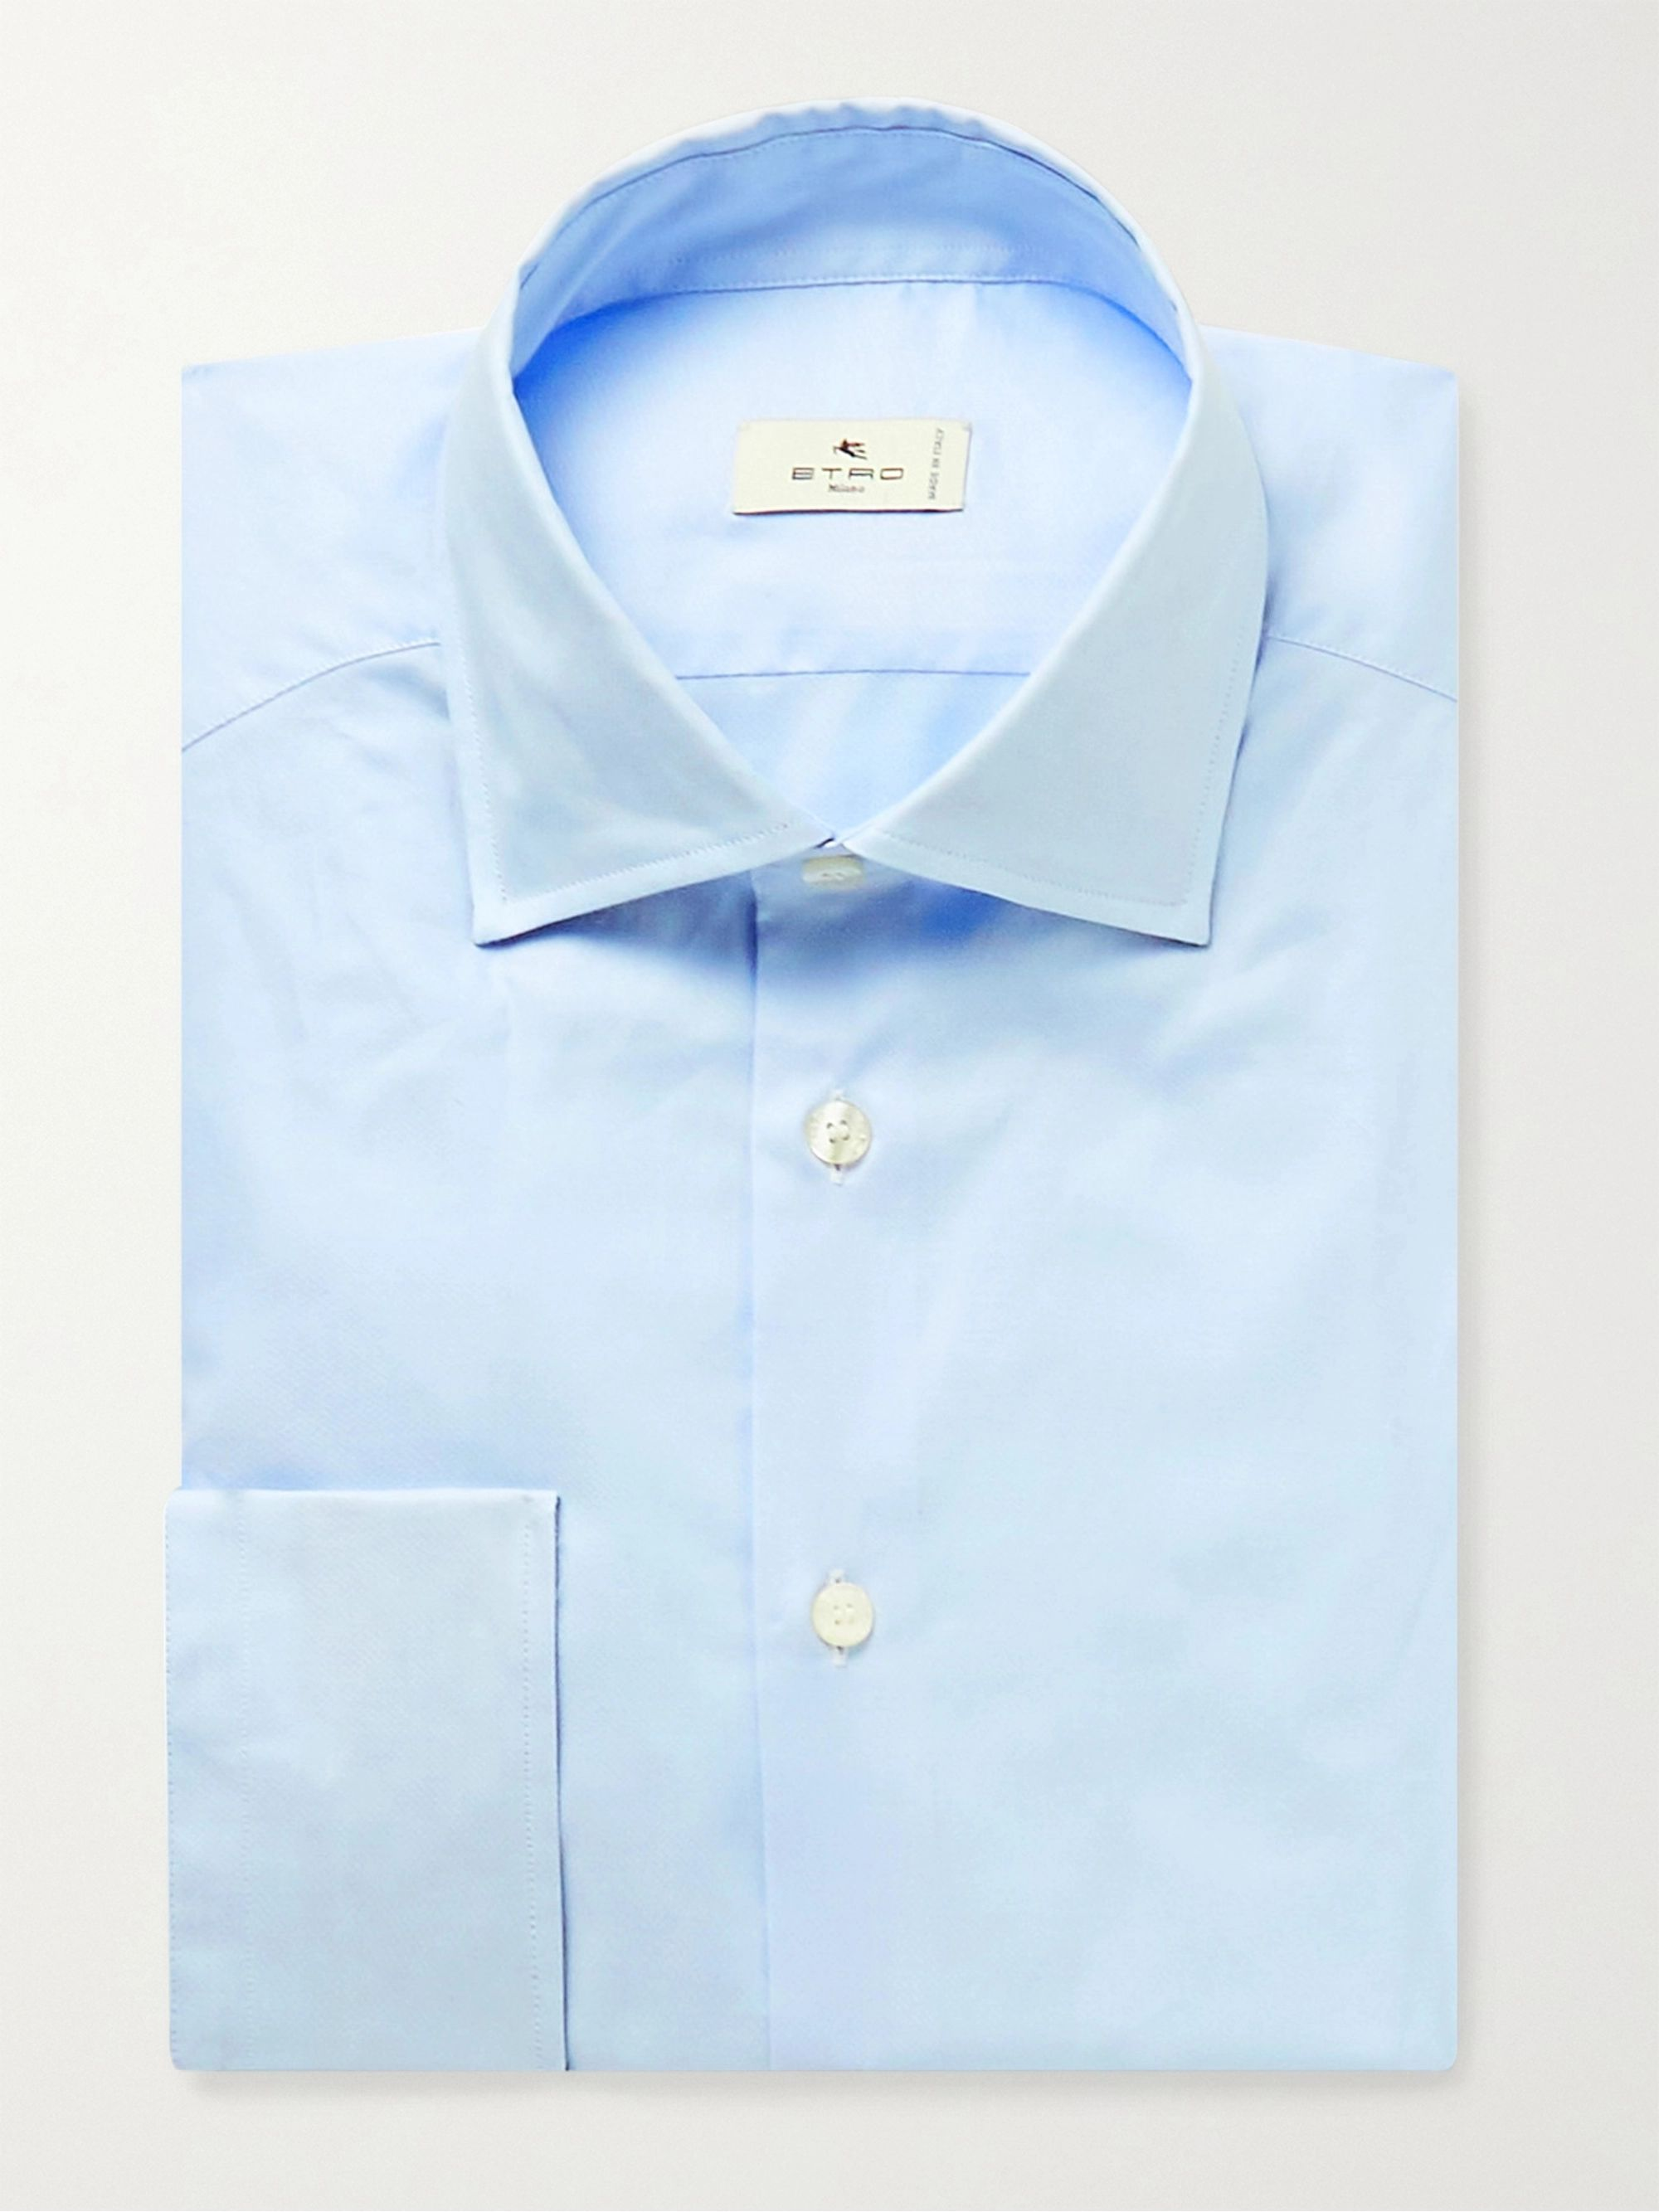 ETRO Slim-Fit Poplin-Trimmed Cotton Oxford Shirt